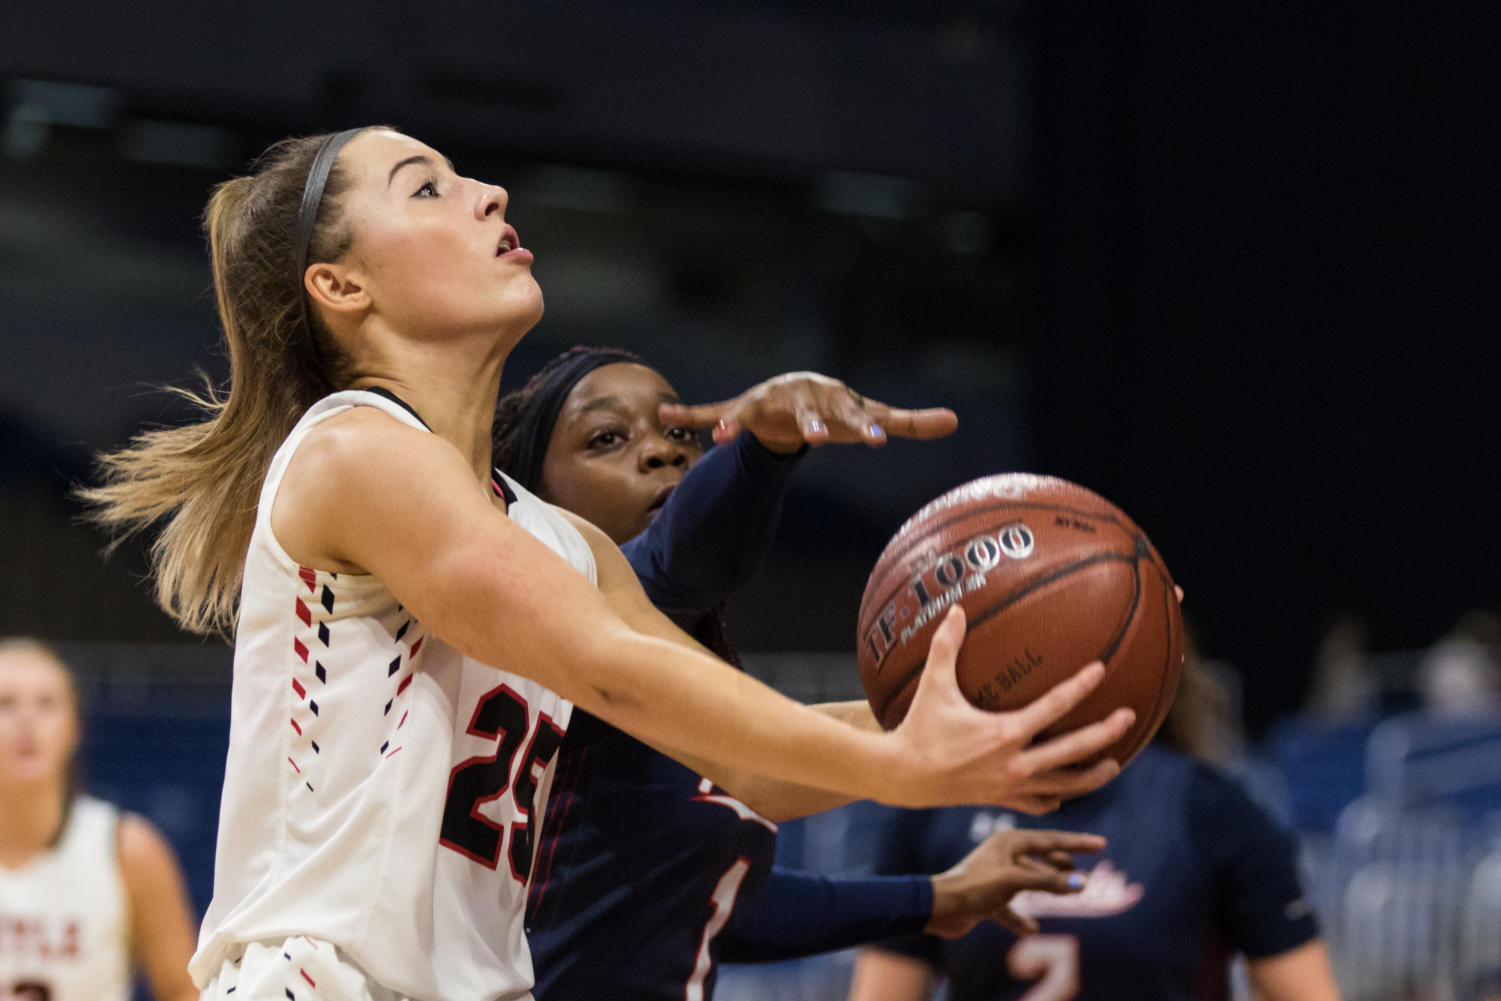 Freshman Sydney Standifer makes a layup for the Lady Eagles as they take on Veterans memorial in the UIL State Championship game.  (Campbell Wilmot (Campbell Wilmot/ The Talon News)